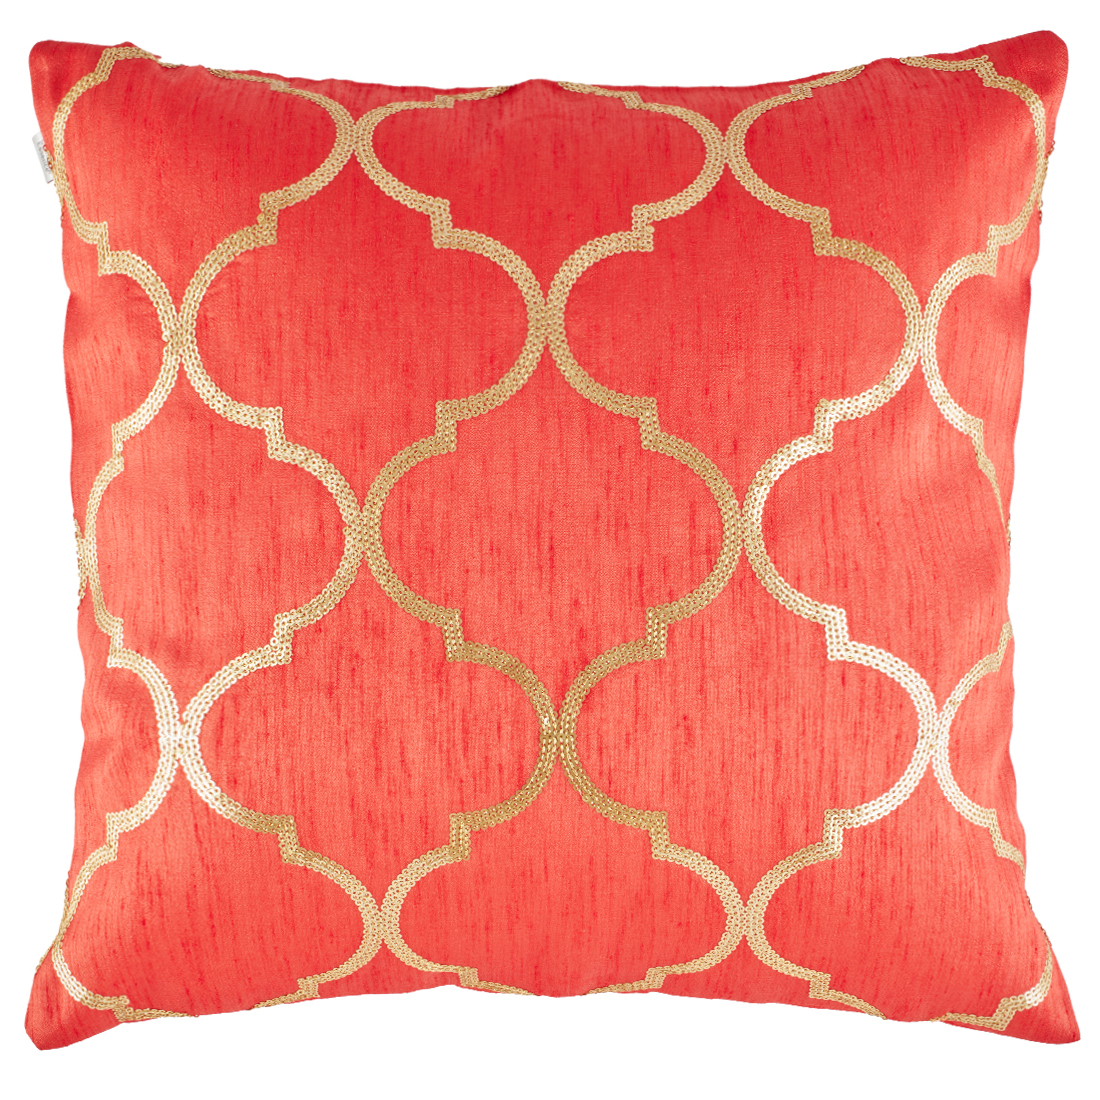 Classique Polyester Cushion Covers in Red Colour by Living Essence